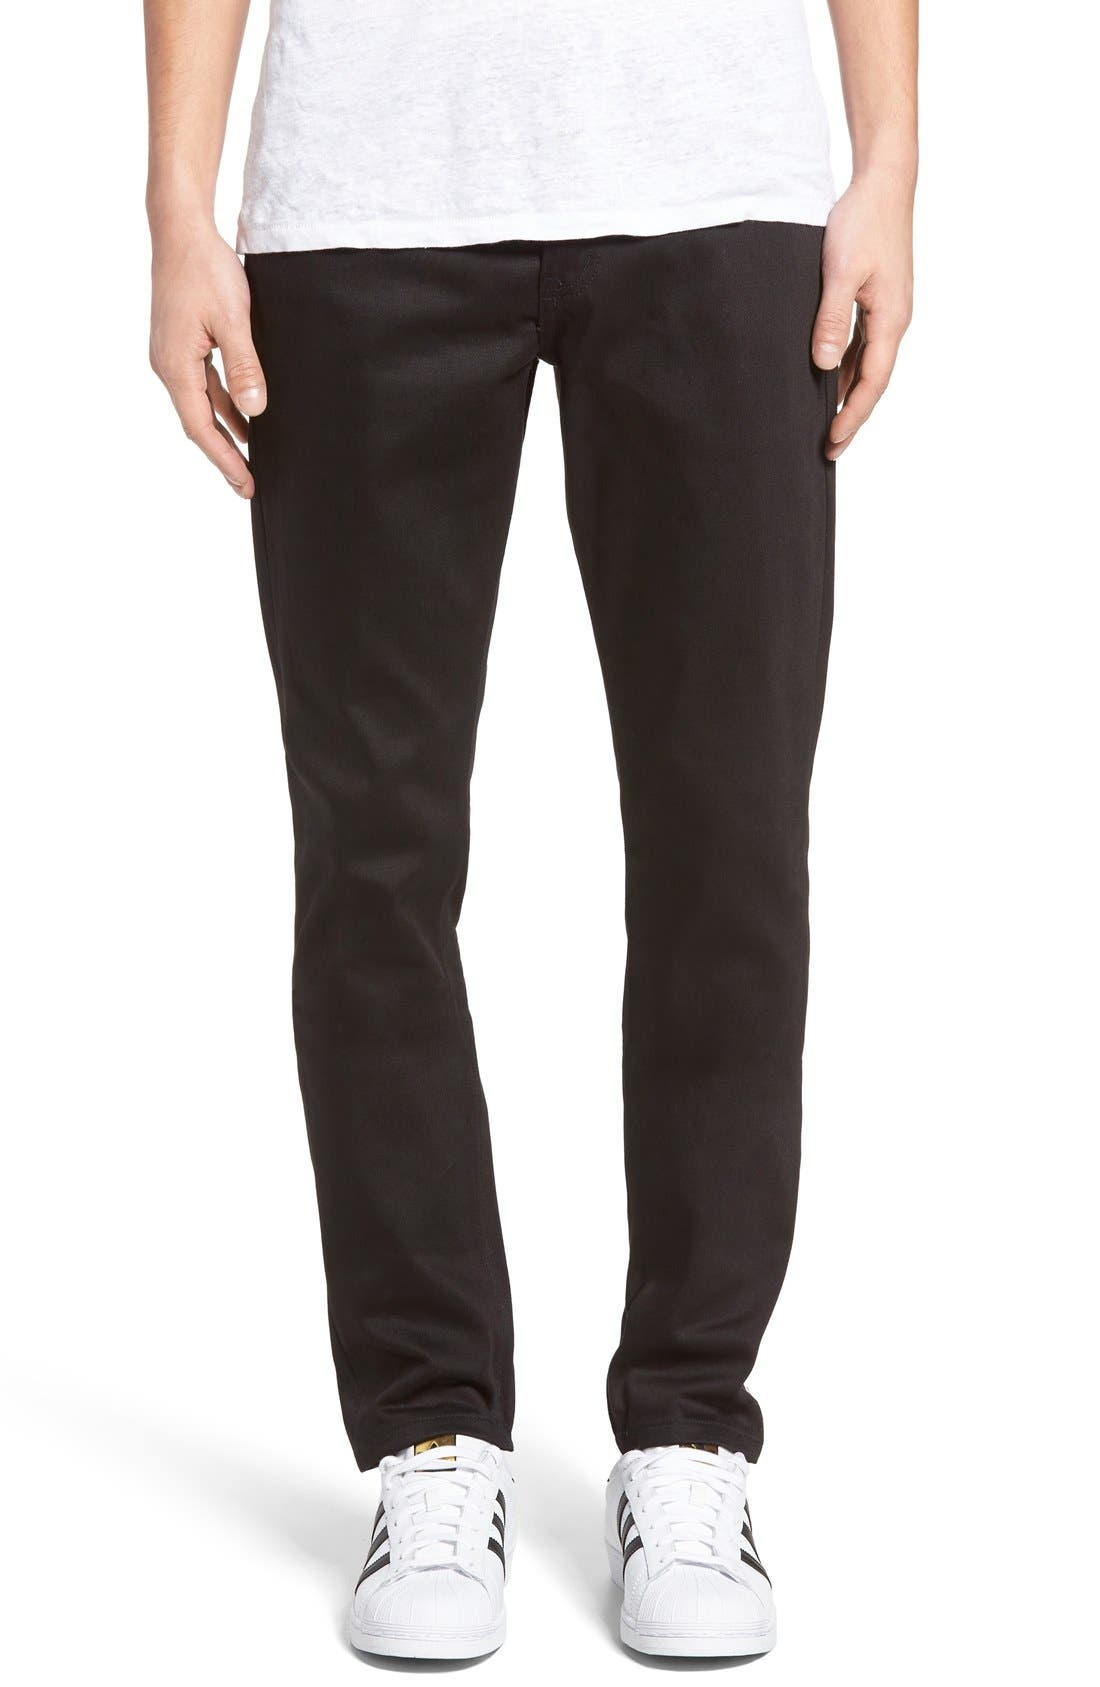 THE UNBRANDED BRAND UB455 Selvedge Skinny Fit Jeans